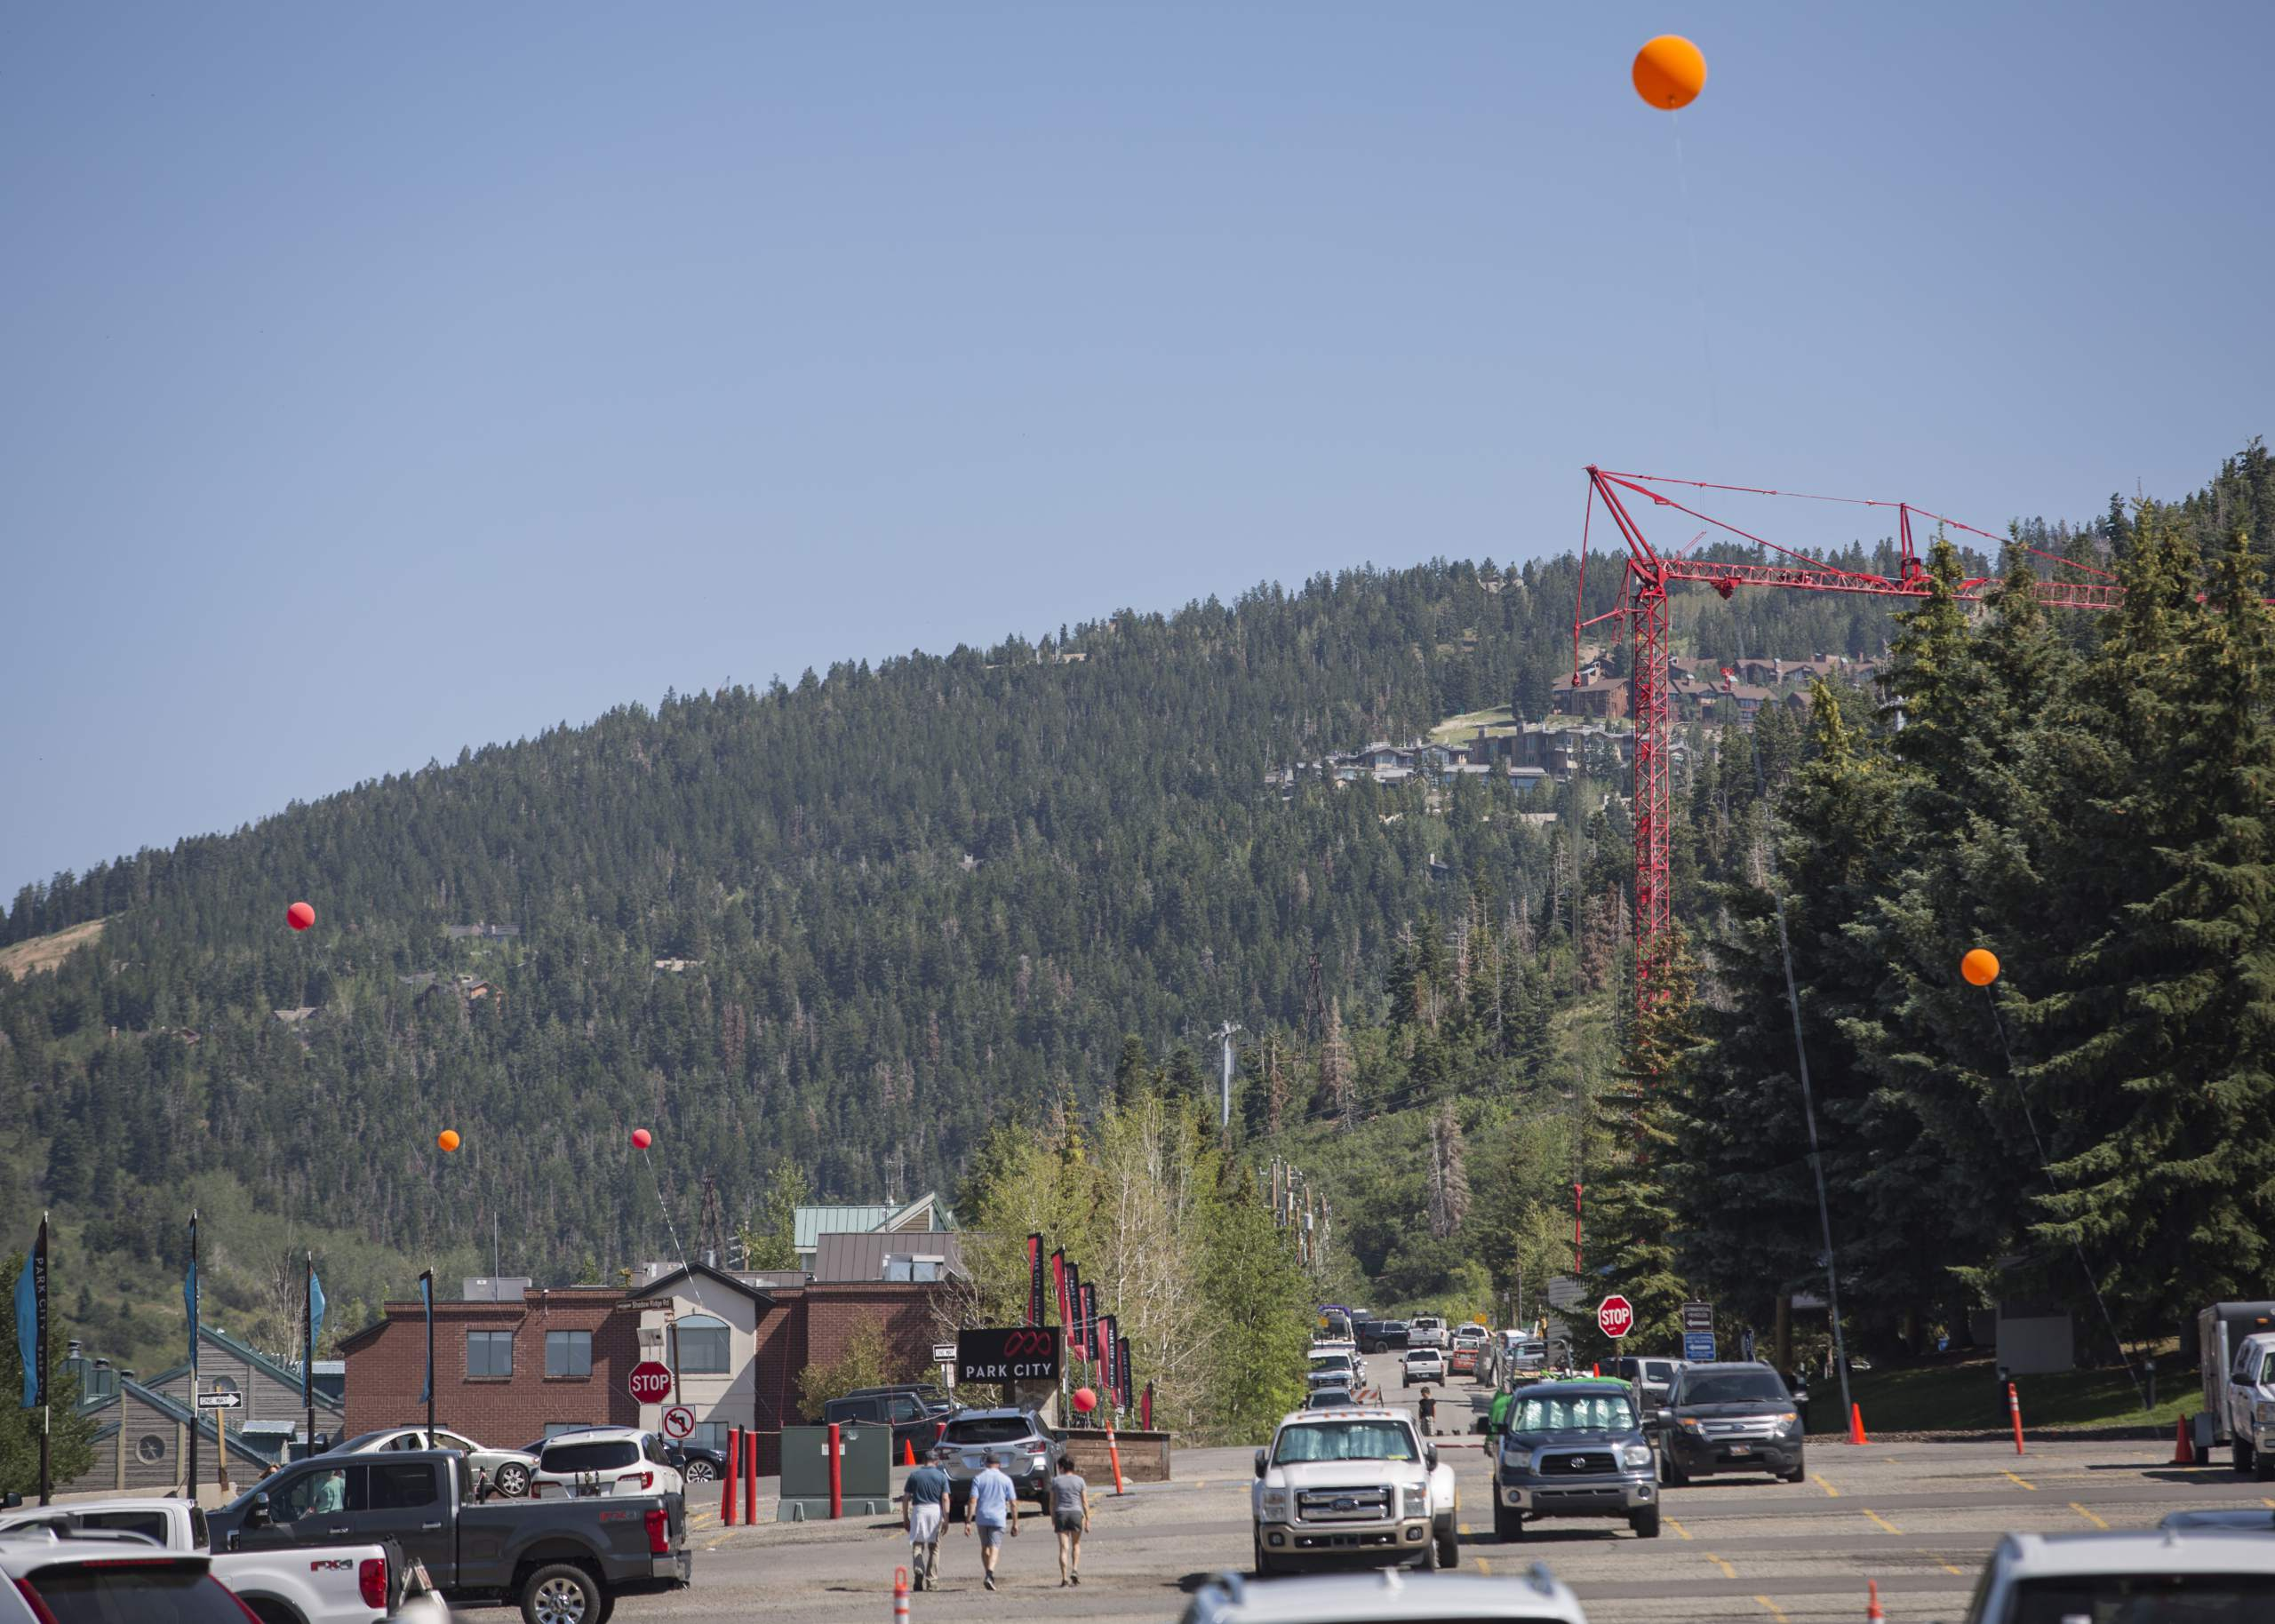 Provo developer leads tour of PCMR project, flying balloons along the way